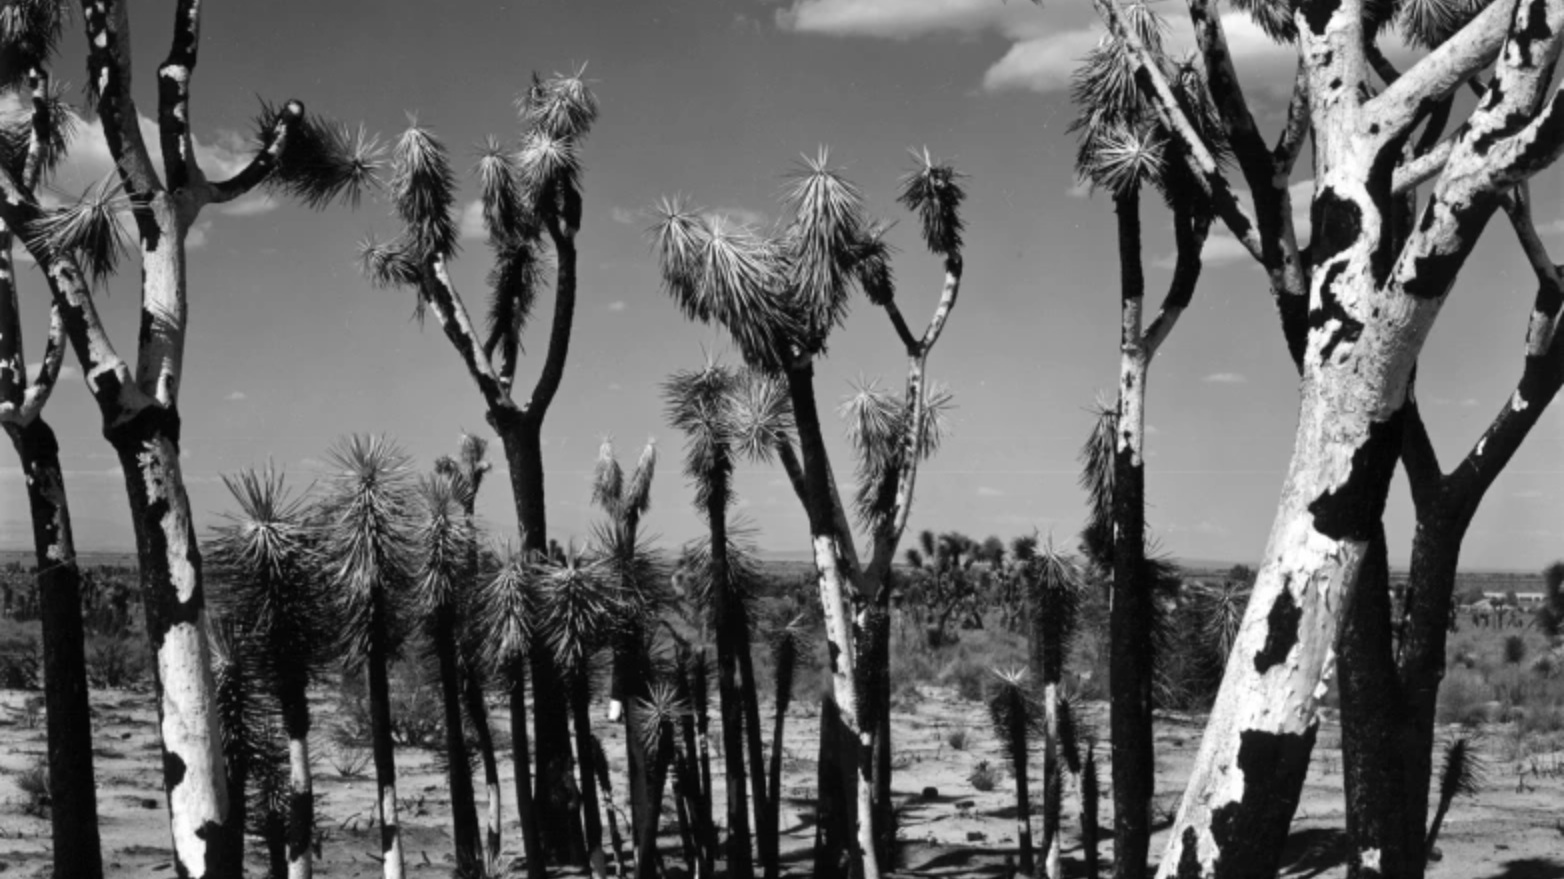 Photography - Historical and contemporaryFeatured Work By: Brett Weston